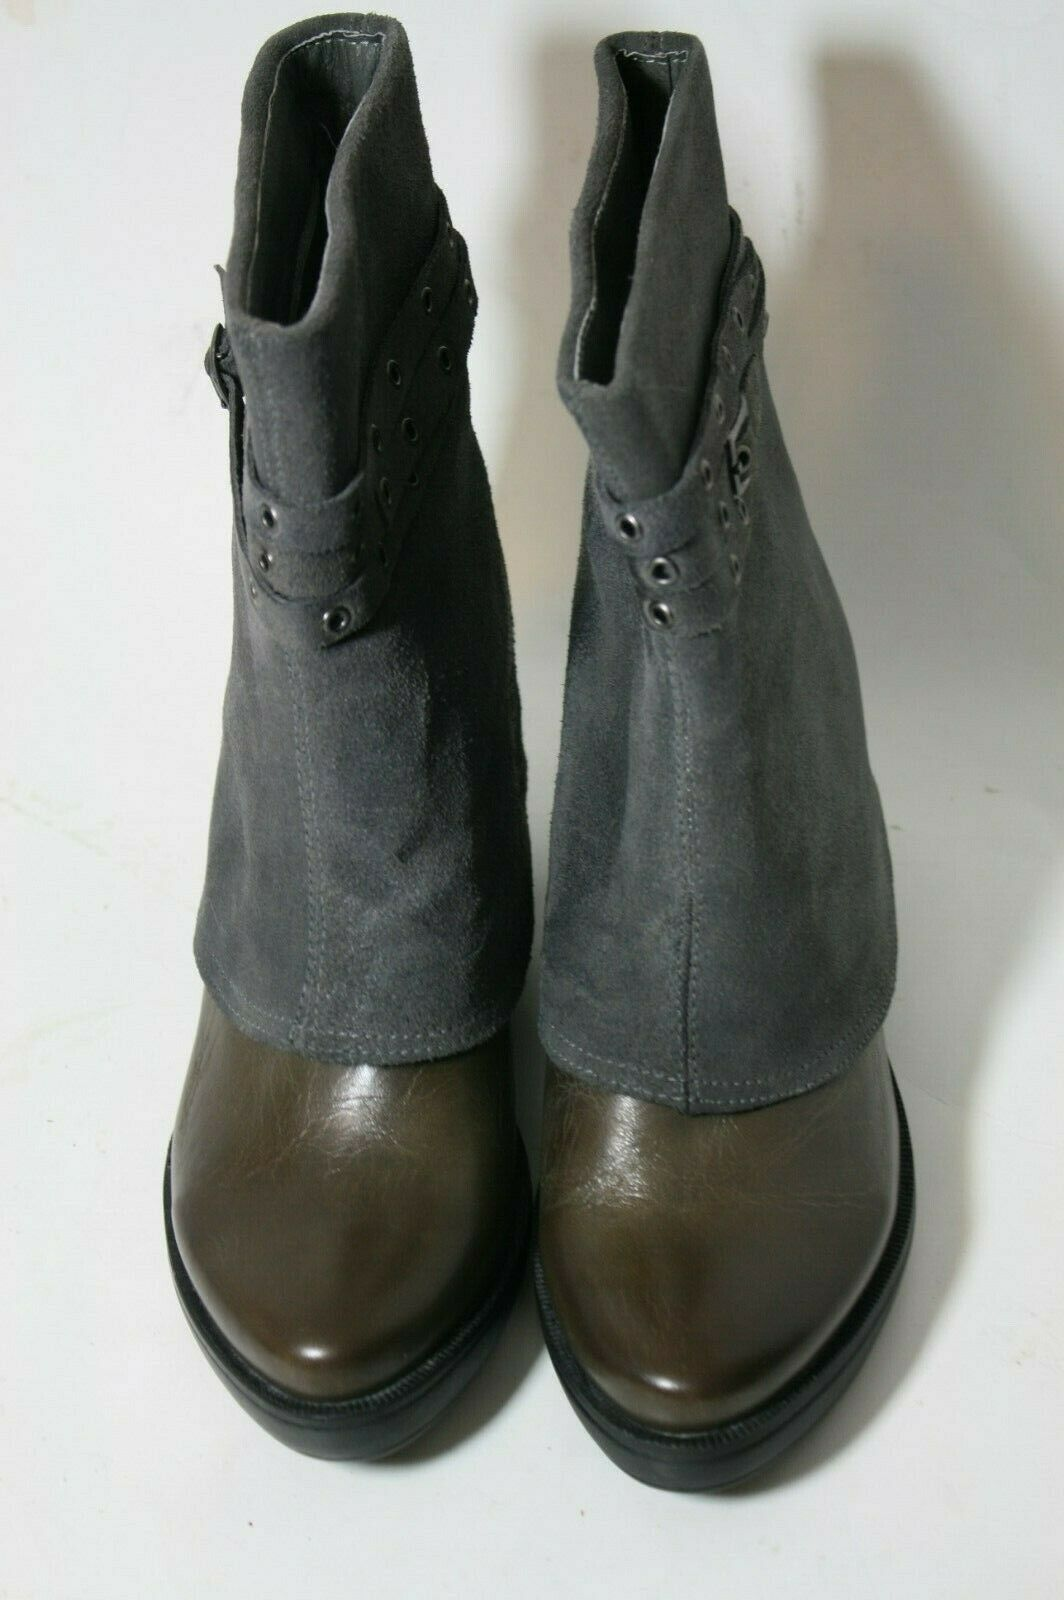 ANTELOPE SHOES BELTED WEDGE WEDGE WEDGE BOOT GREY SUEDE LEATHER PULL ON ANKLE BOOTIES 37 NEW 9ffafd